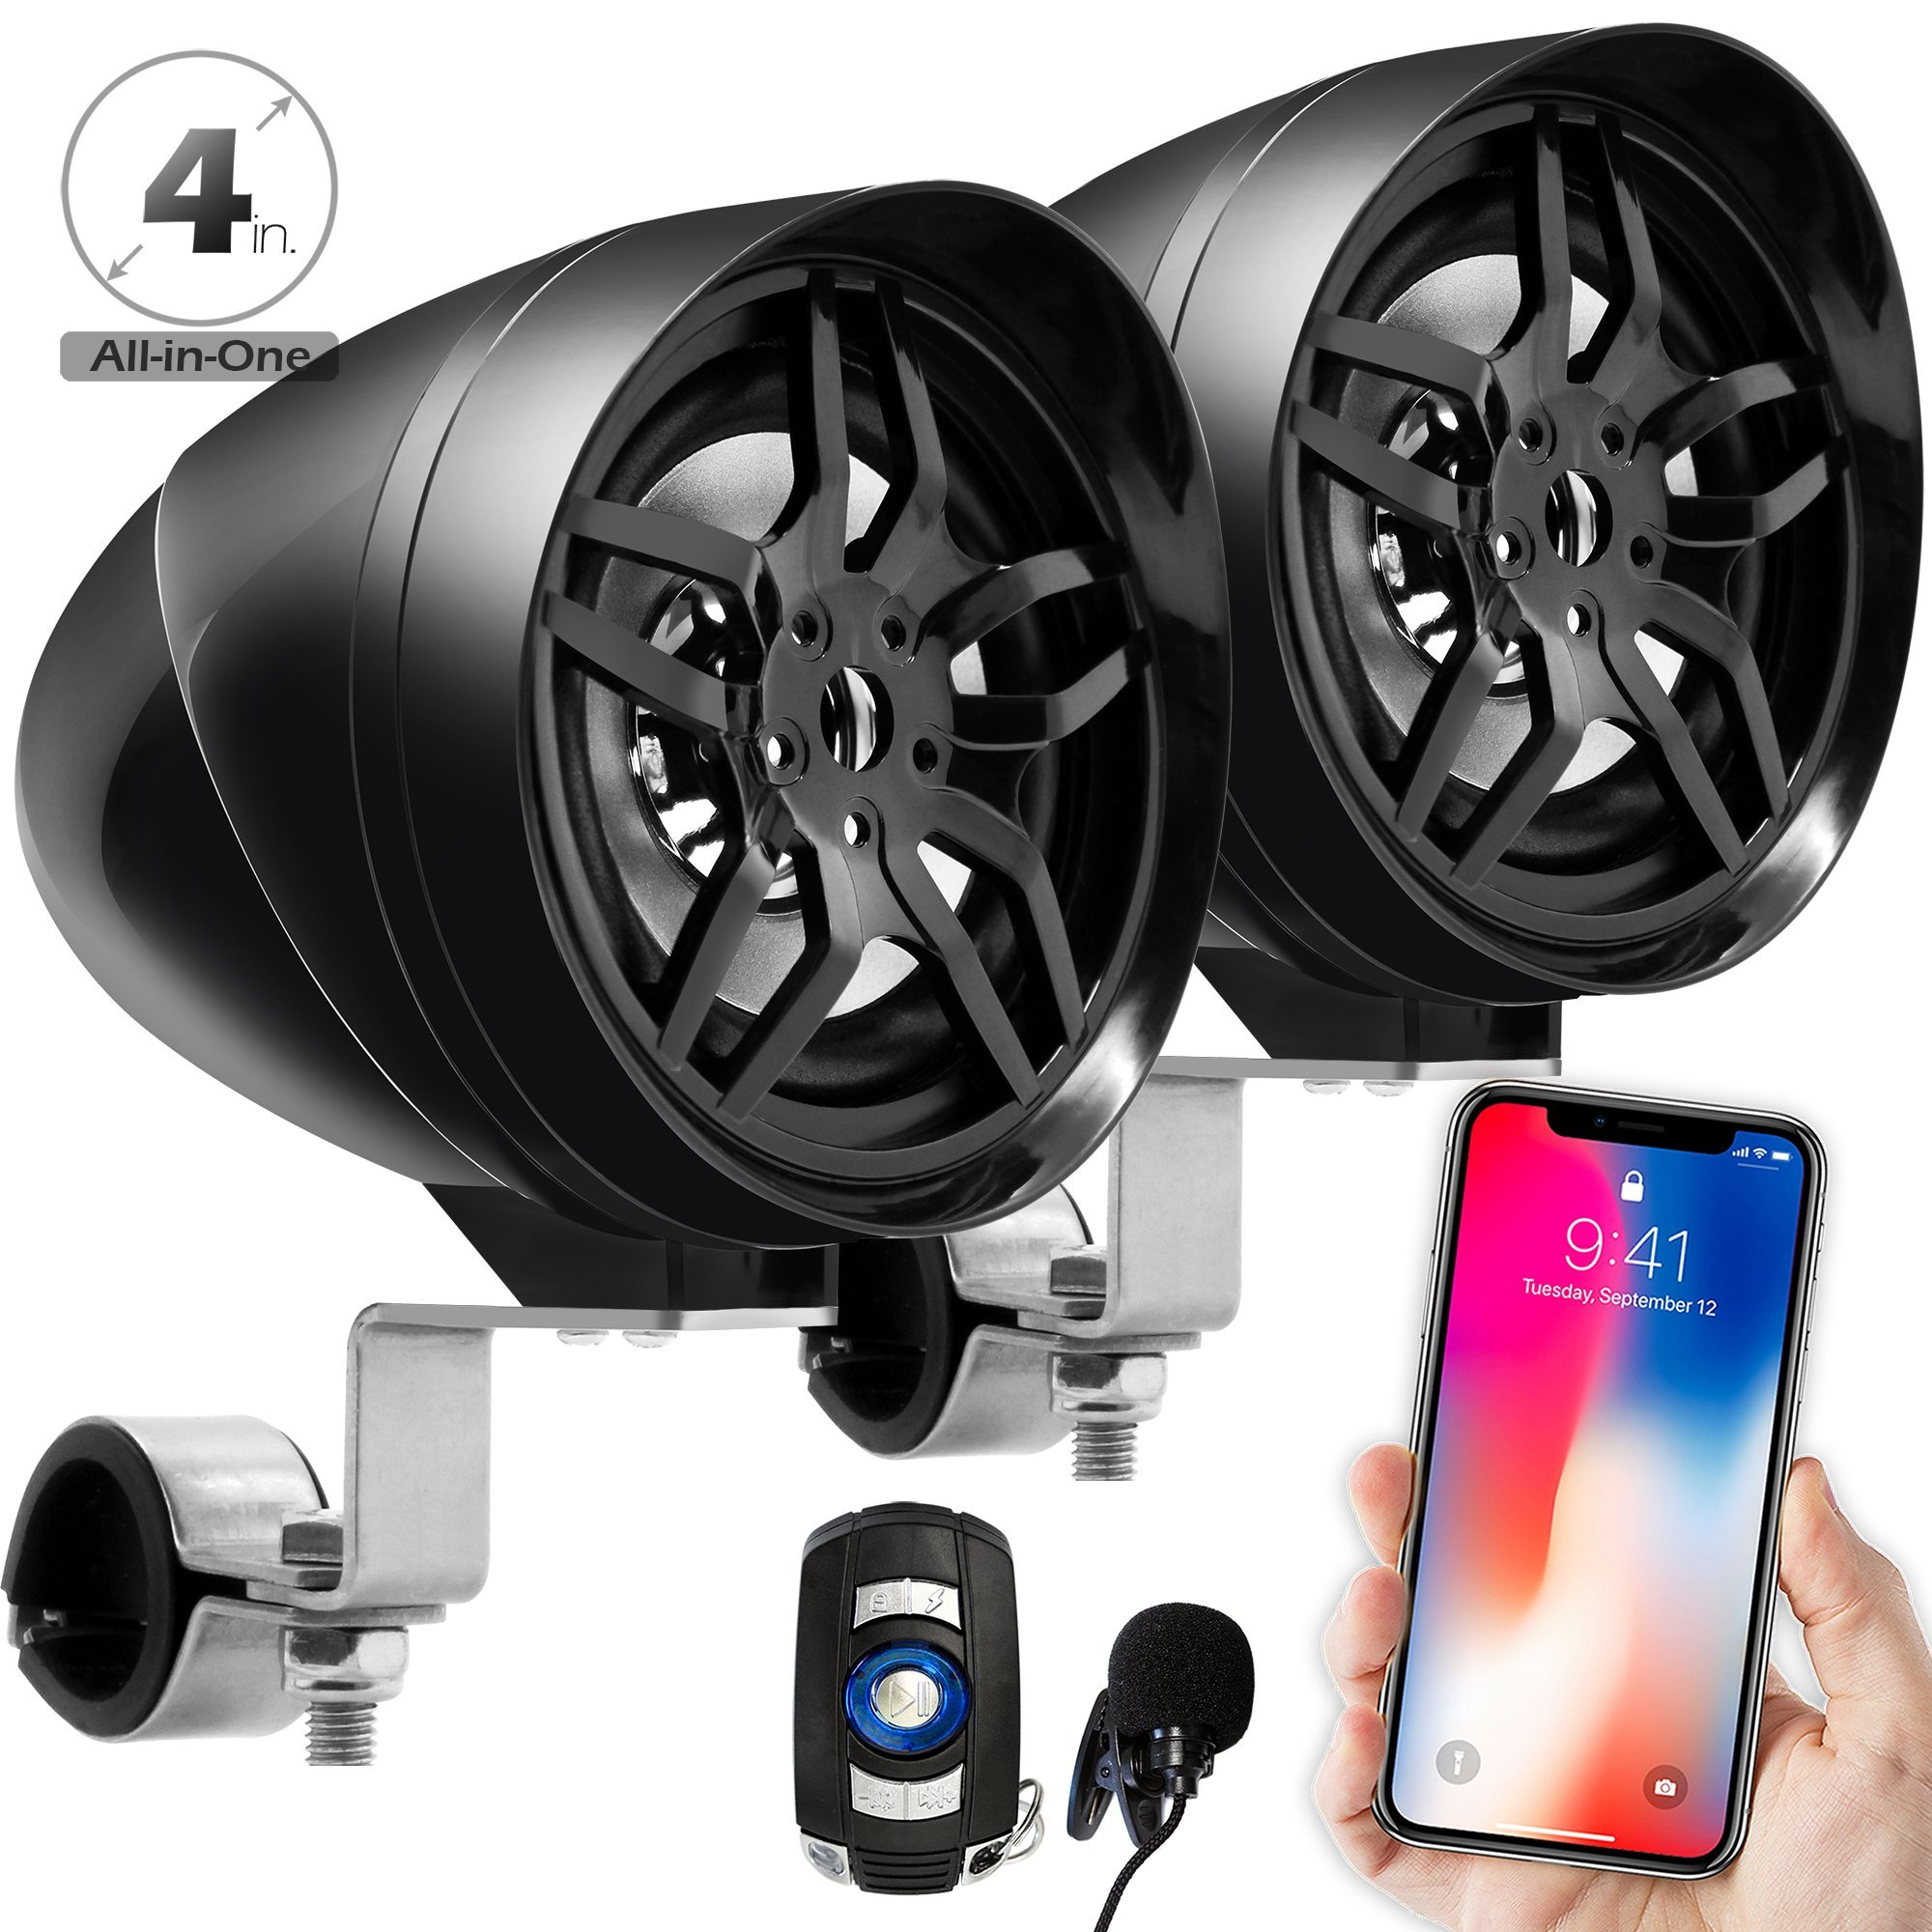 GoldenHawk All-In-One 4'' Waterproof Bluetooth Motorcycle Stereo Speakers 7/8-1.25 in. Handlebar Mount MP3 Music Player Sound Audio System Scooter ATV UTV w/USB, Remote, Radio, Amplifier